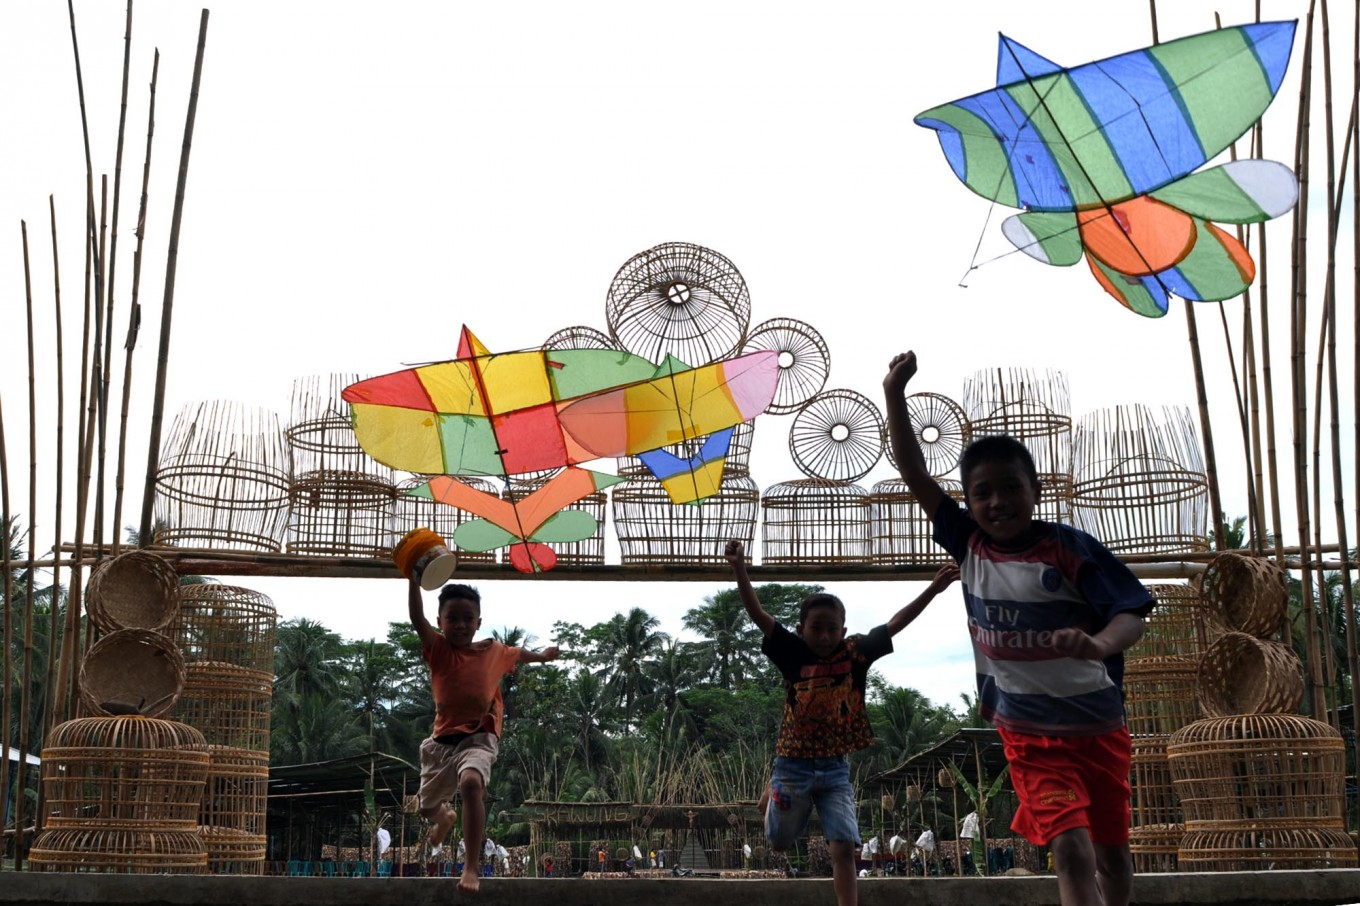 Three boys run to fly a kite at Bunder village. The kites are made of bamboo with creative shapes and colors. People of Bunder mostly work as a bamboo weavers producing cages. JP/ Magnus Hendratmo